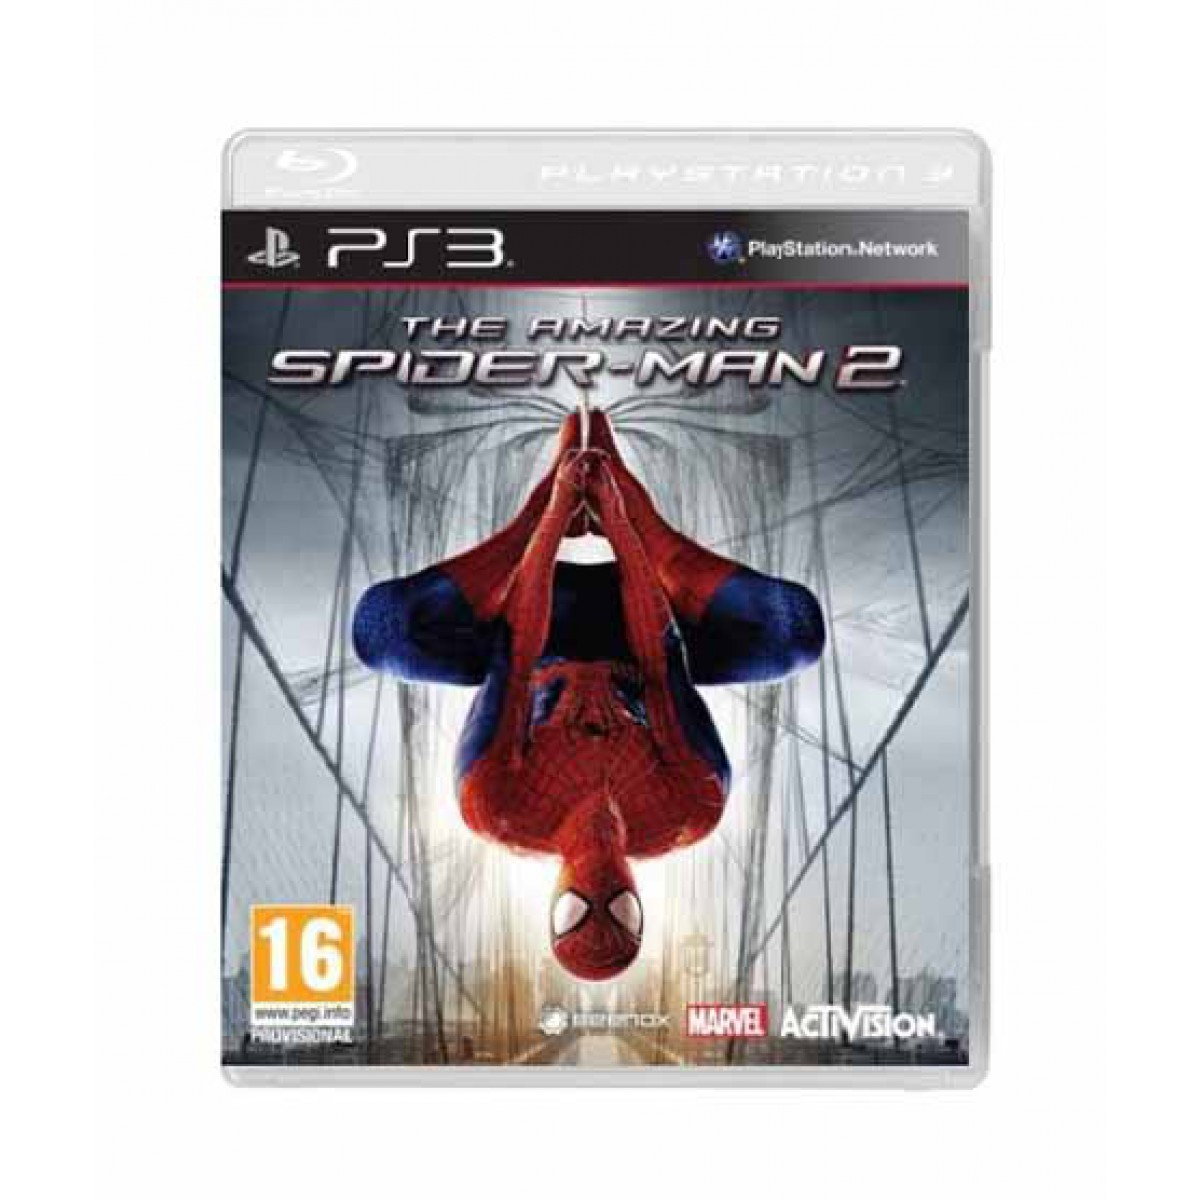 The amazing spider man 2 for ps3 game 1